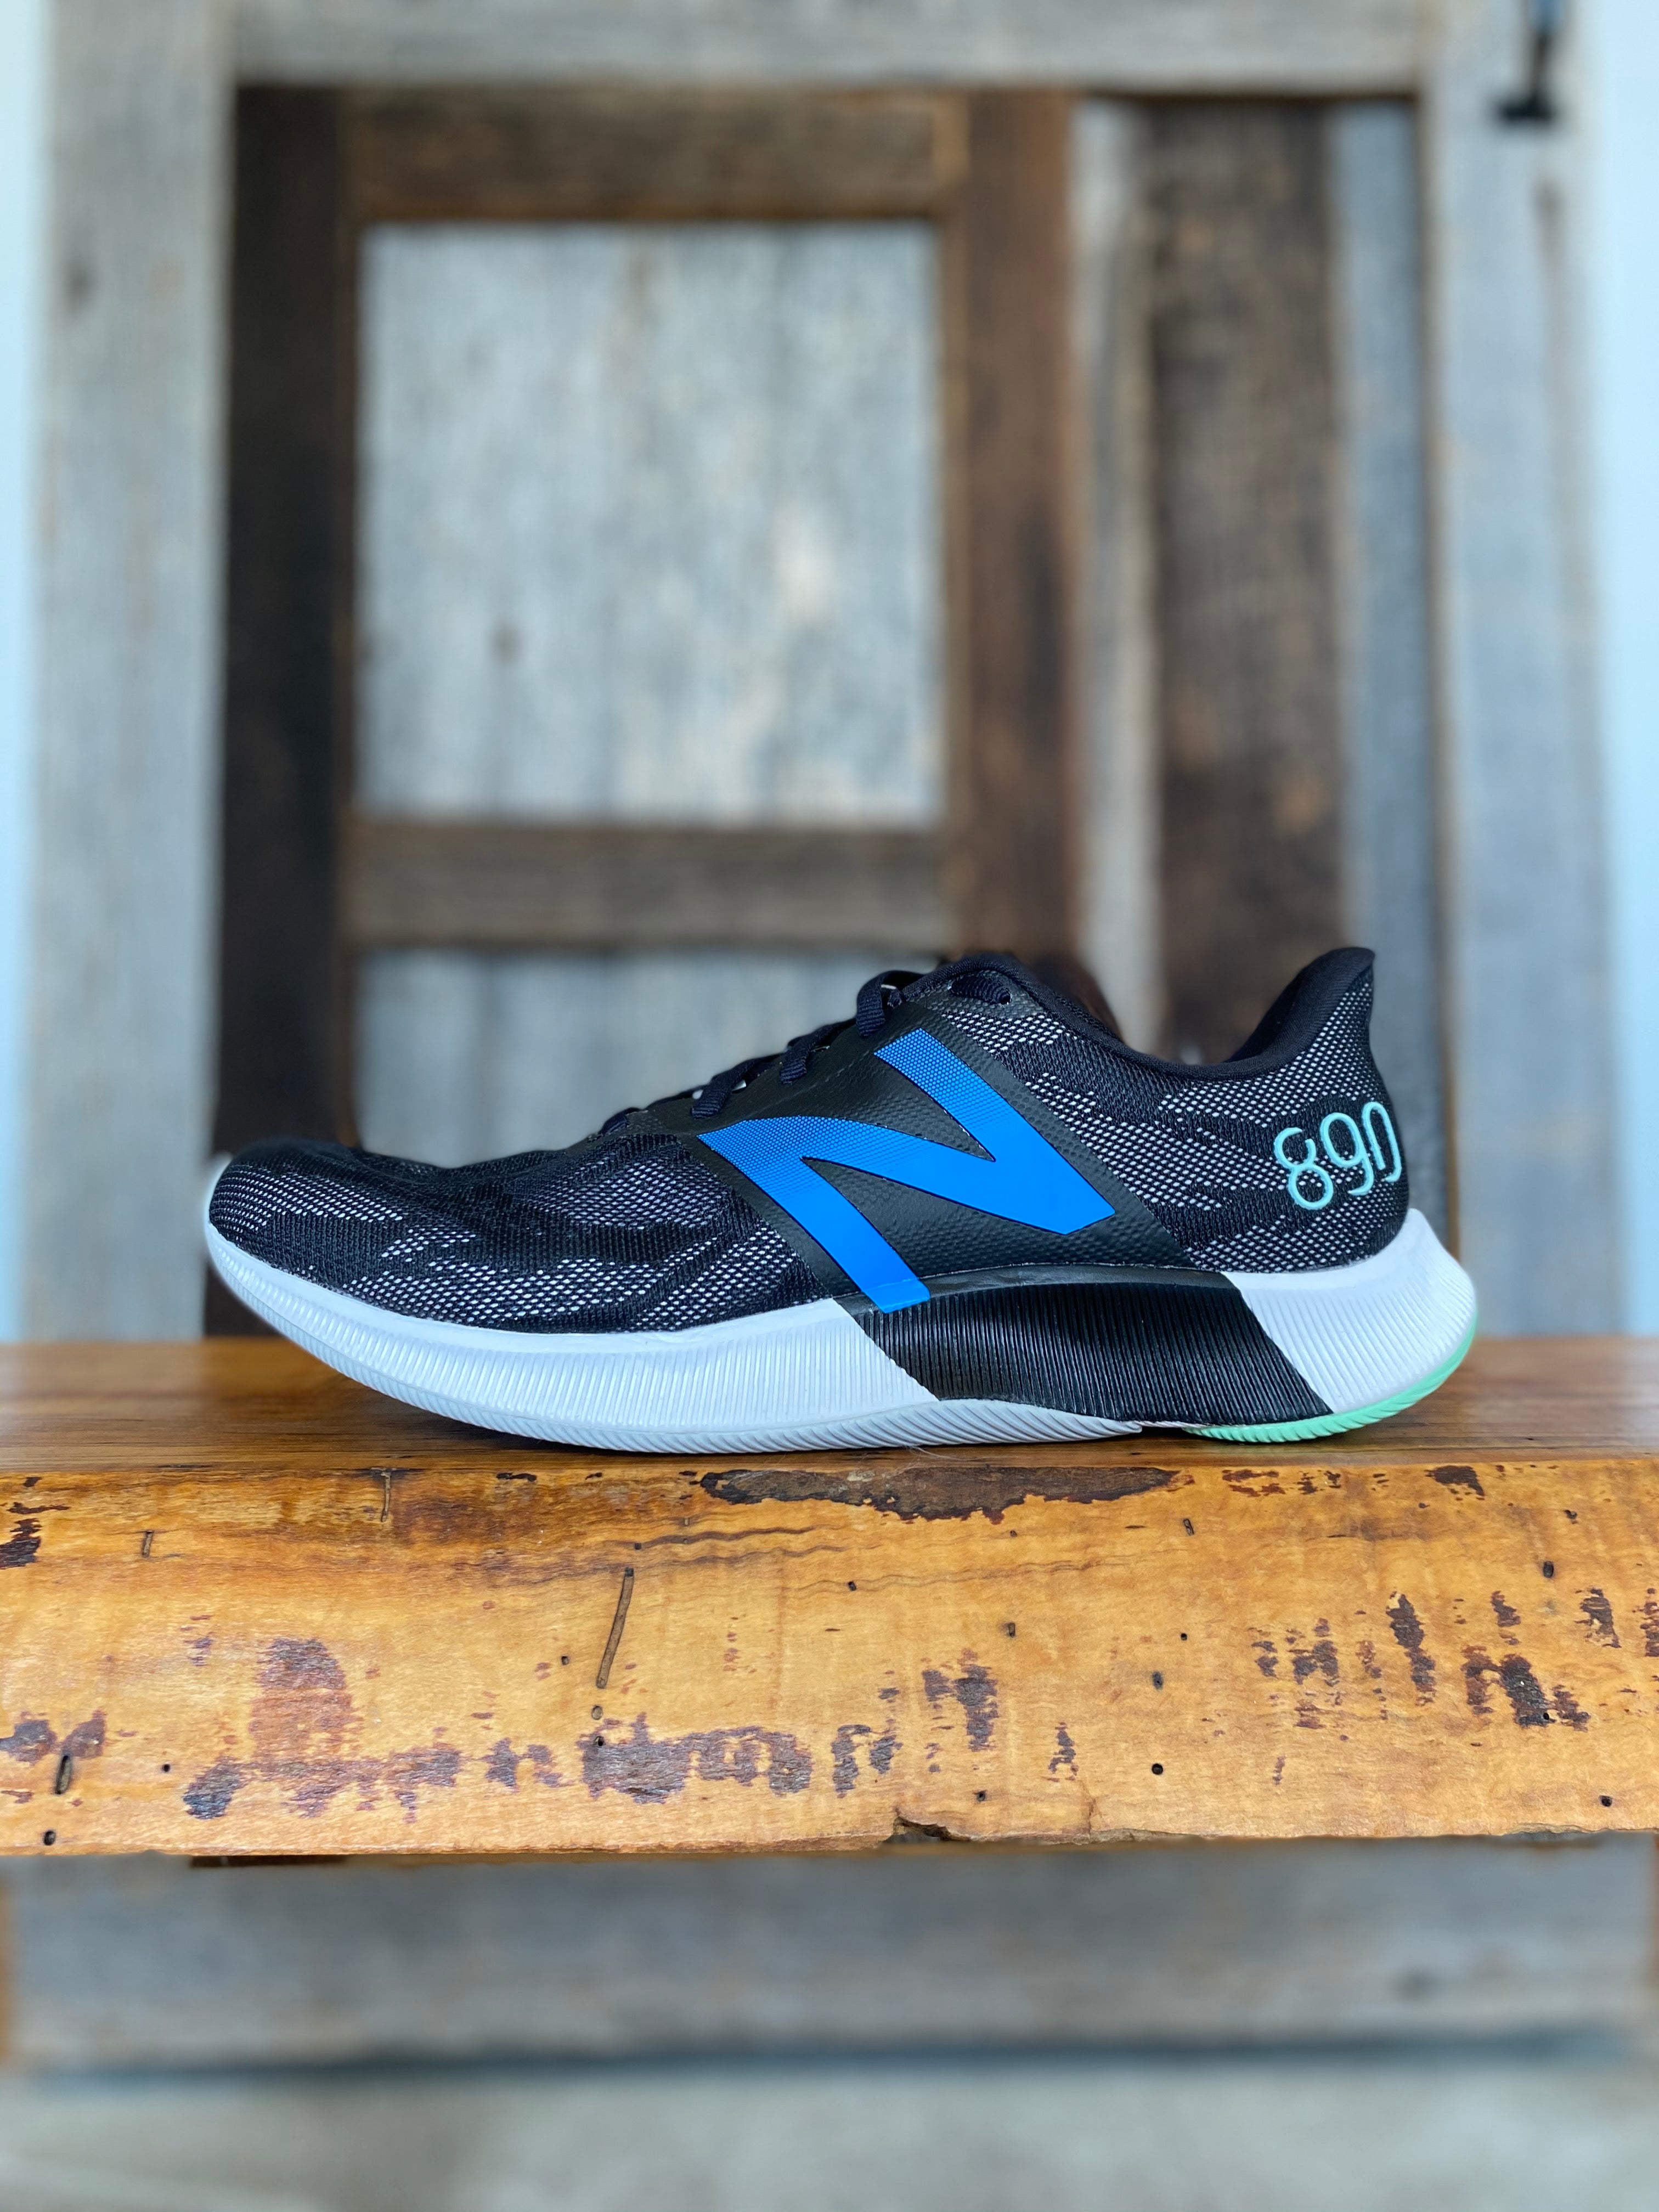 M New Balance FuelCell 890v8